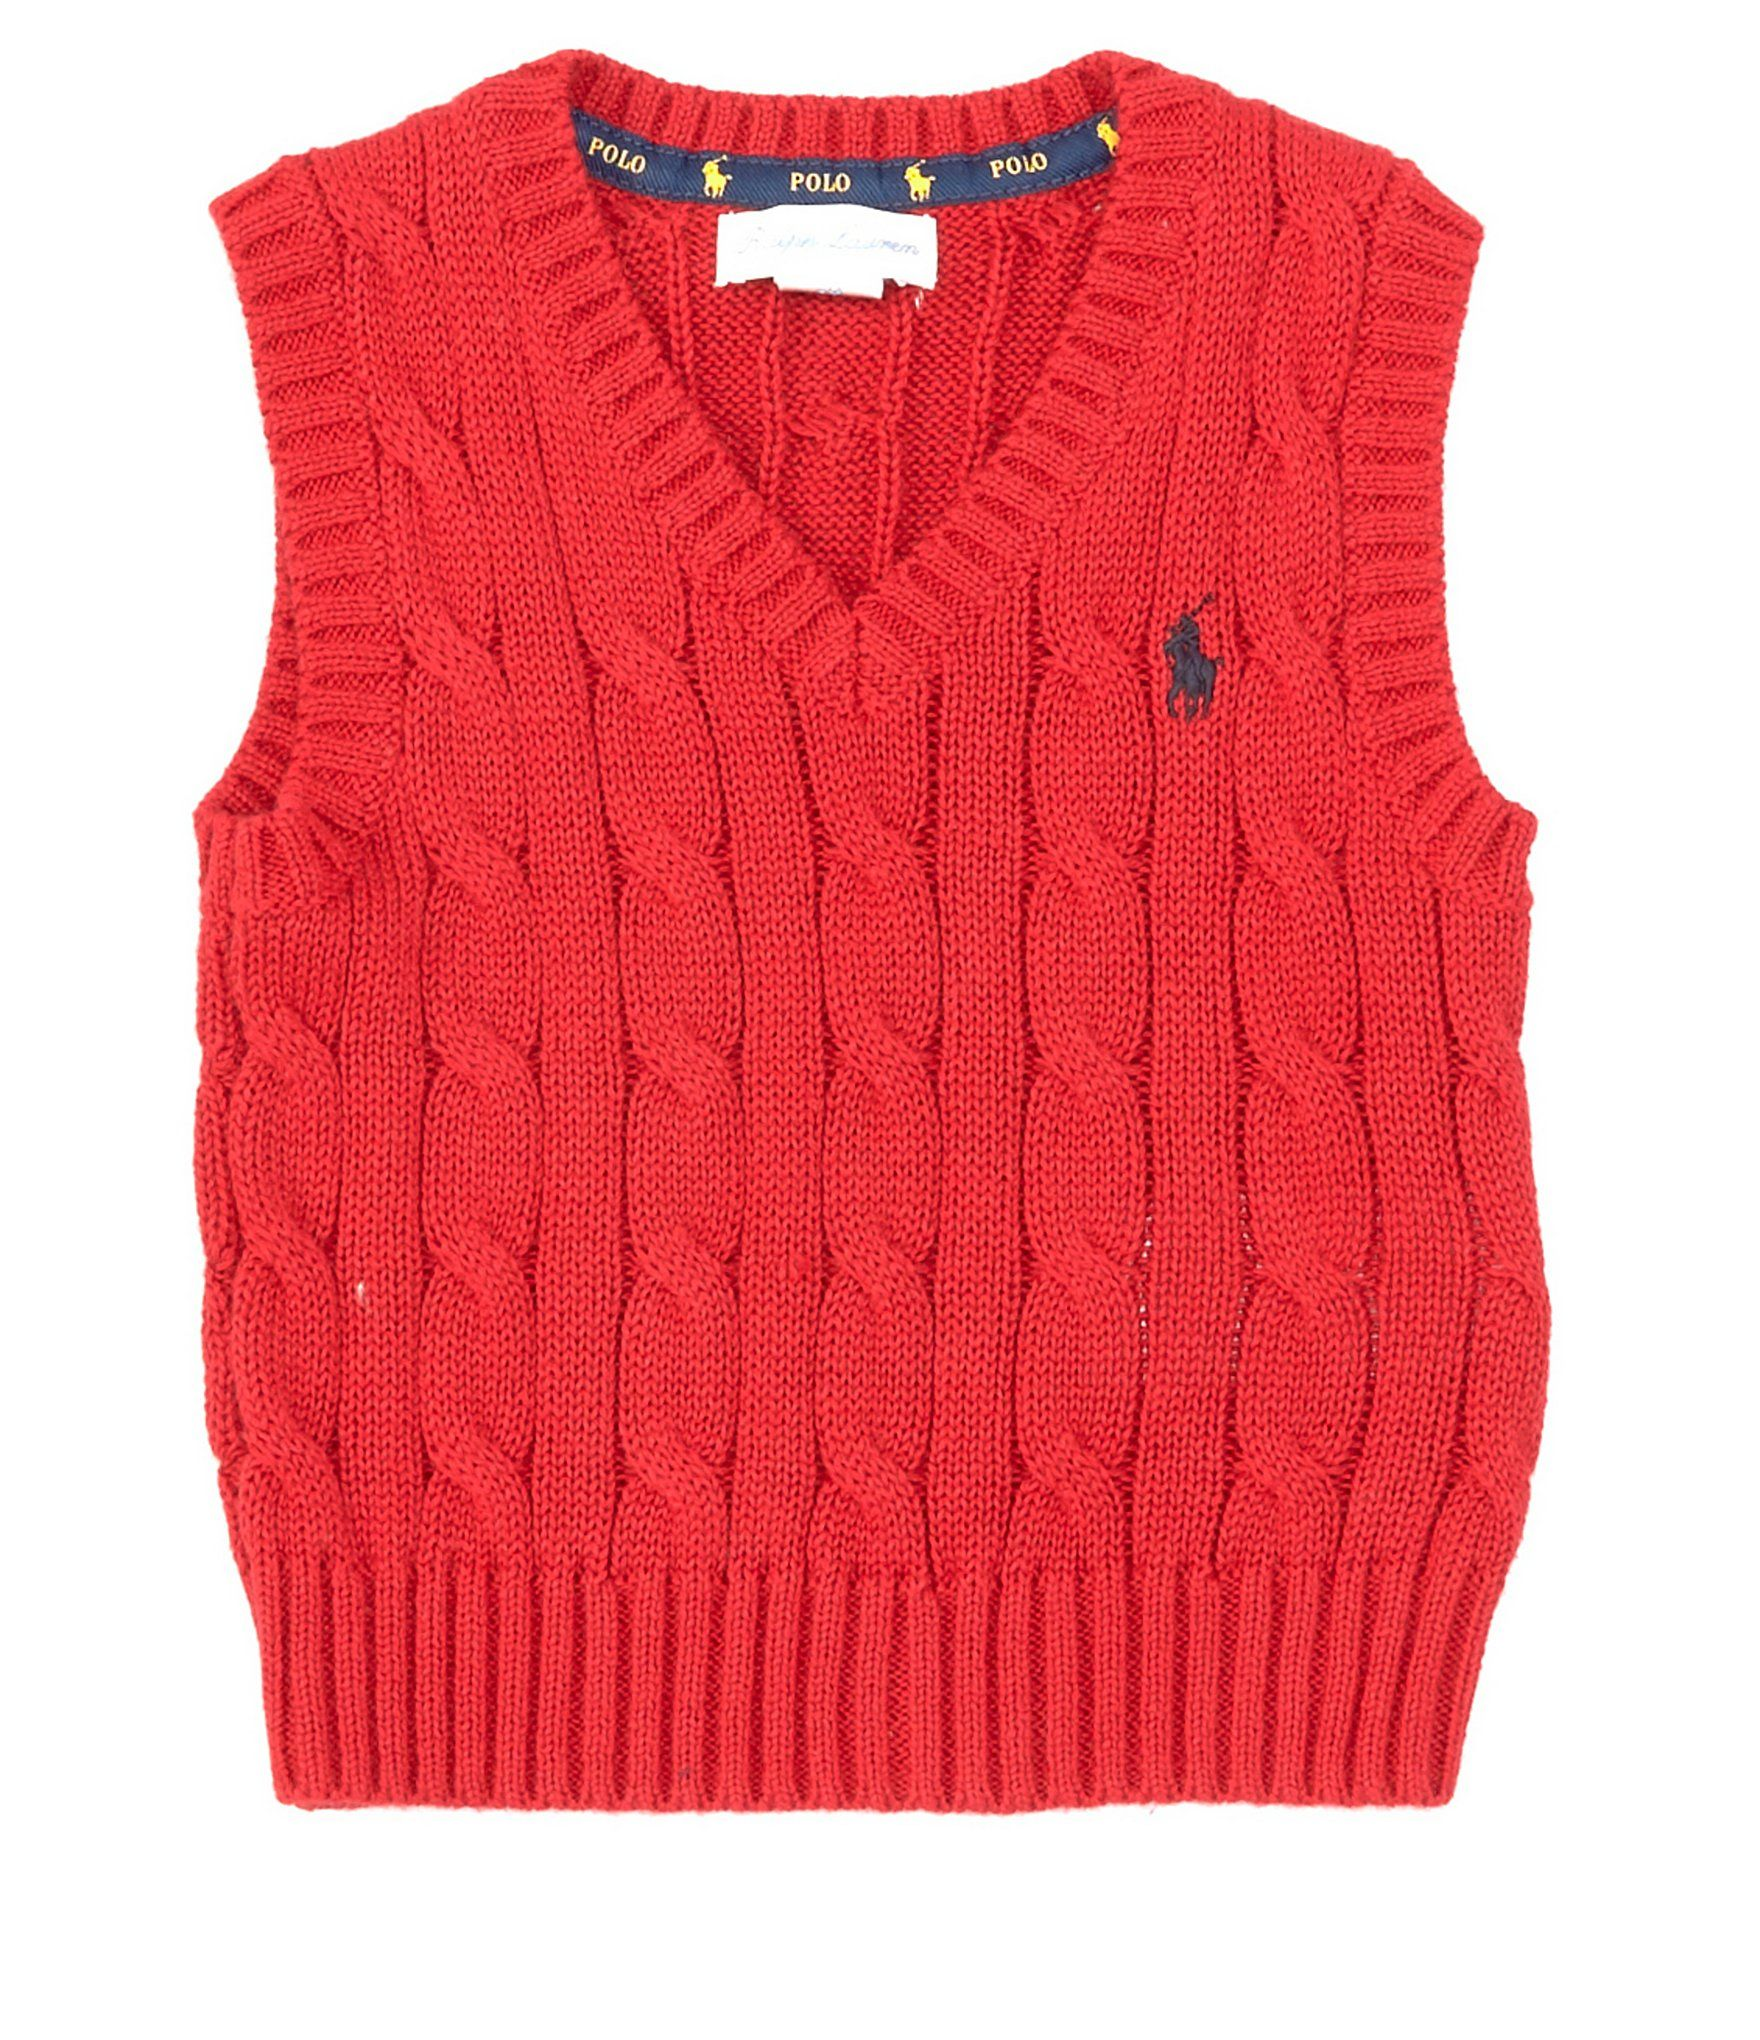 Photo of Ralph Lauren Childrenswear Baby Boys 3-24 Months Cable-Knit Sweater Vest | Dillard's